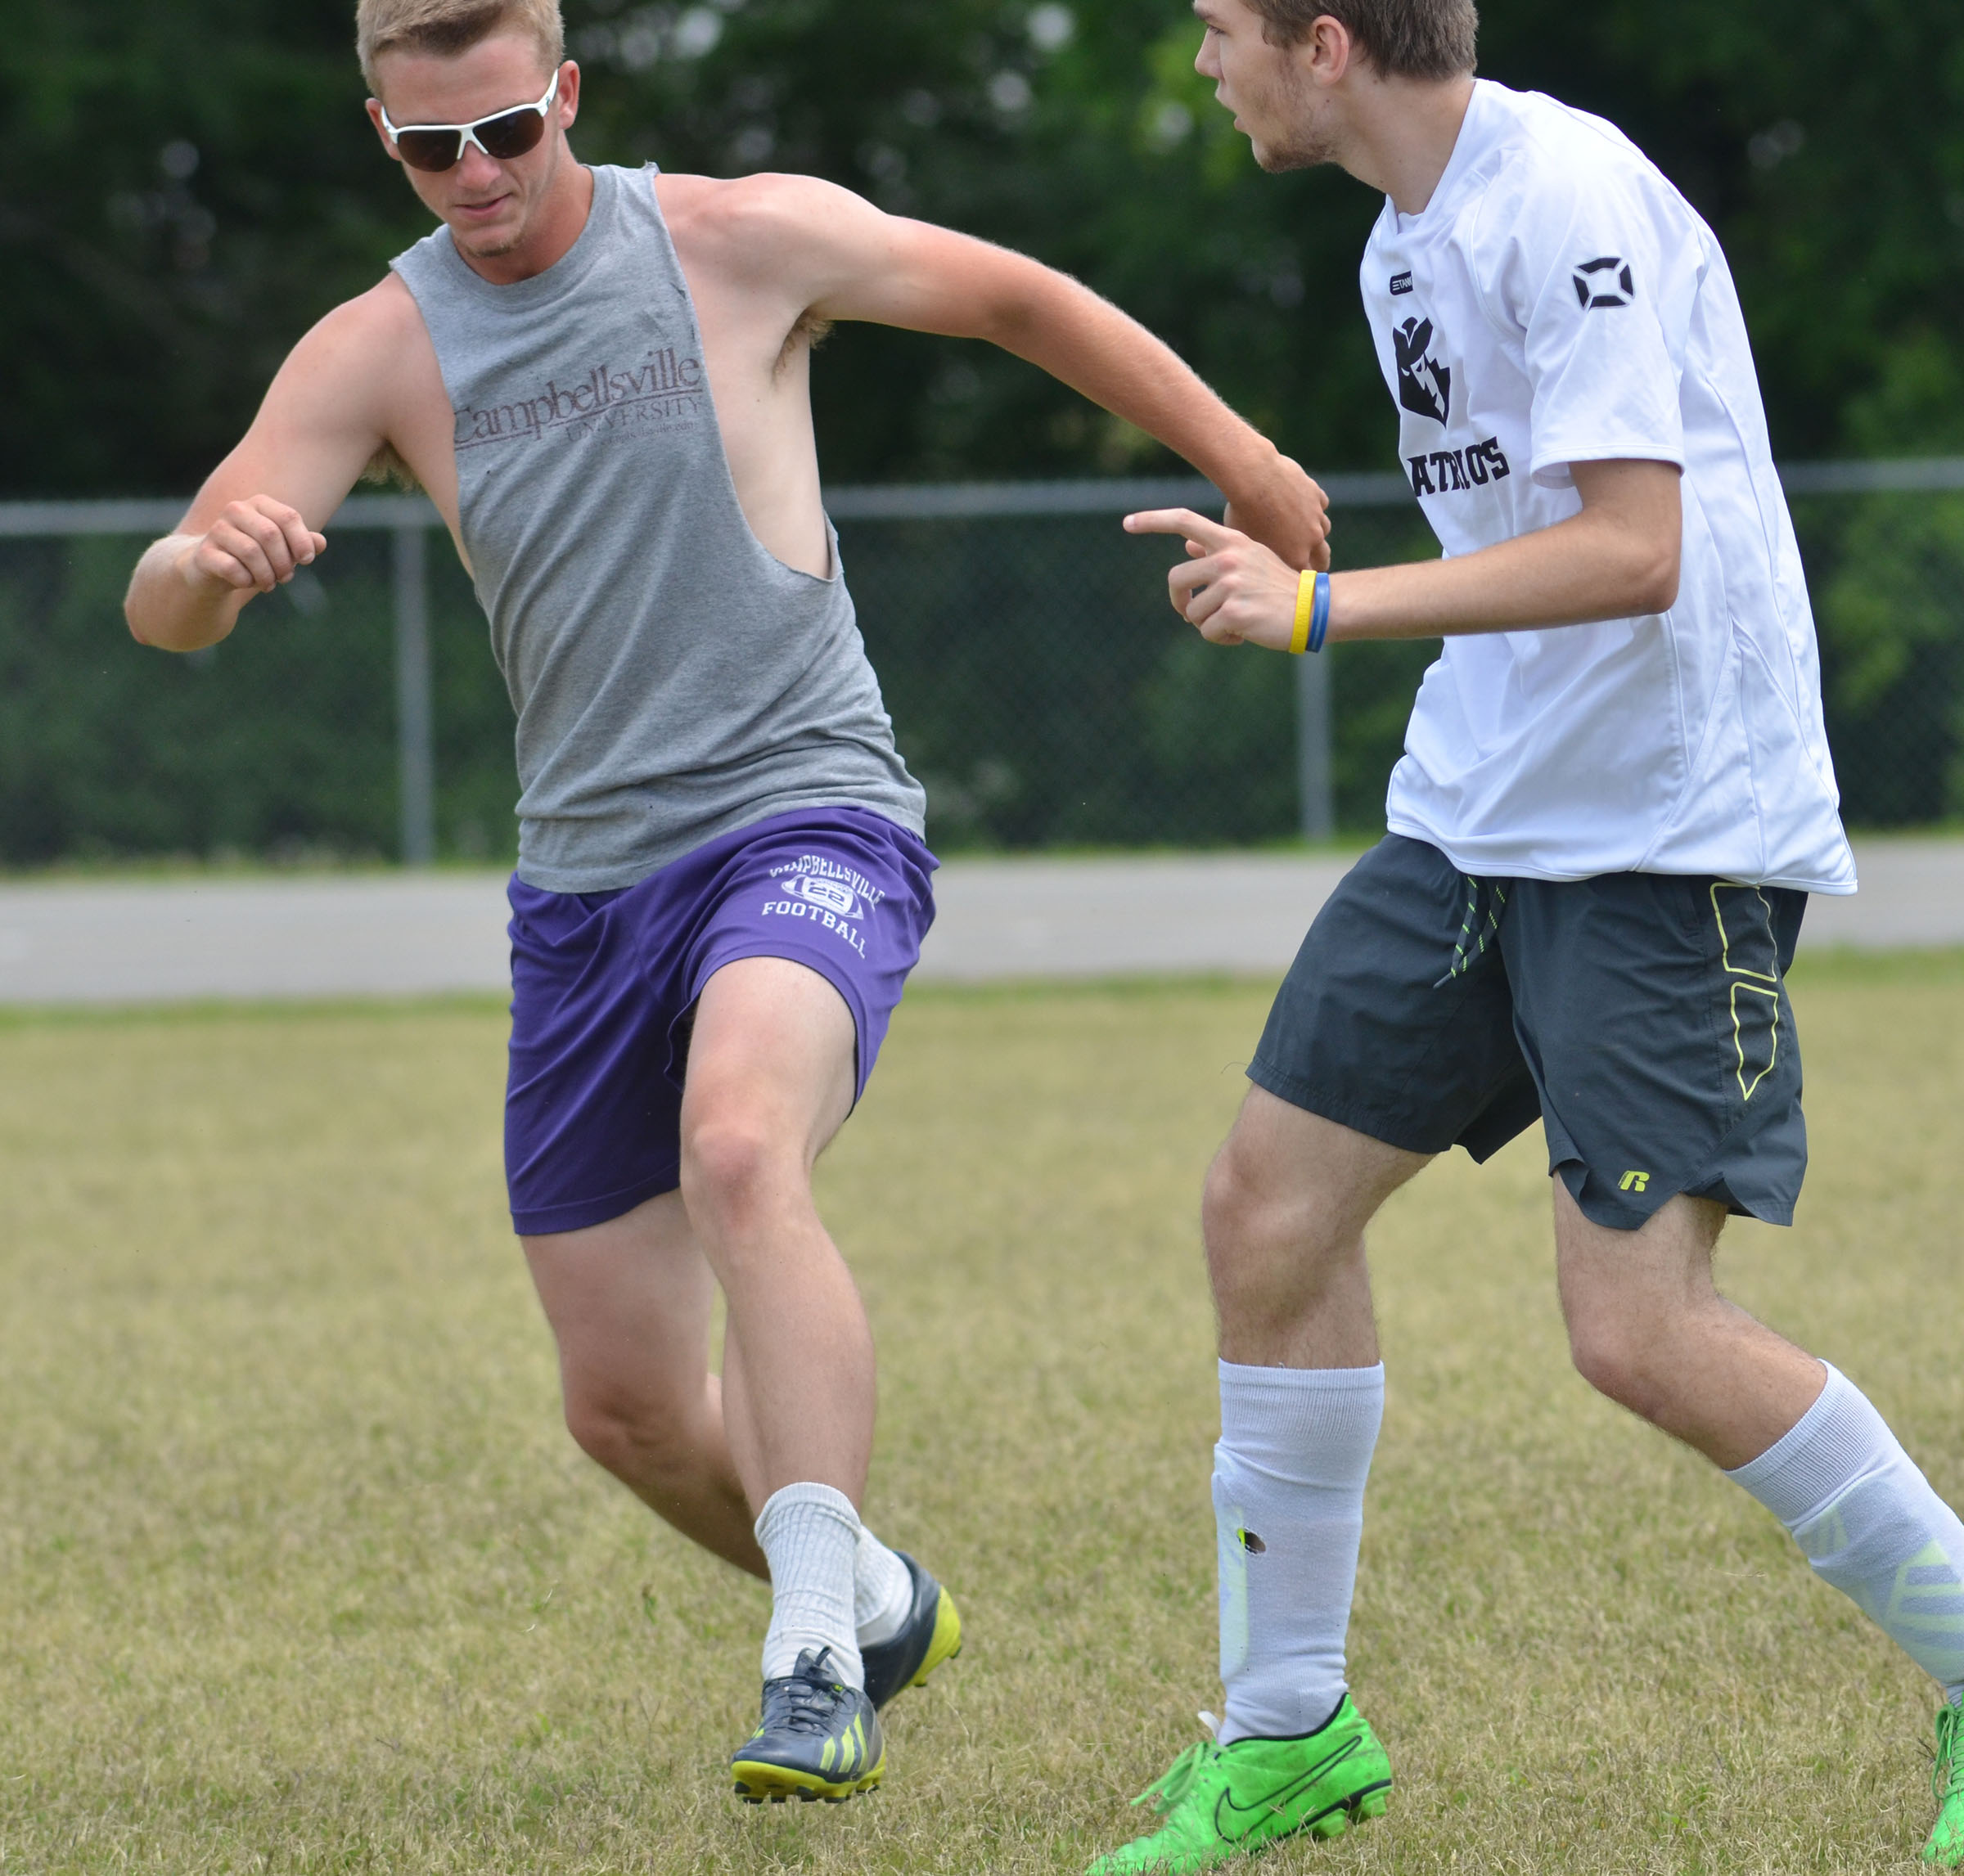 CHS soccer alumni player Logan Dial, at left, and senior Christian Berry run for the ball.